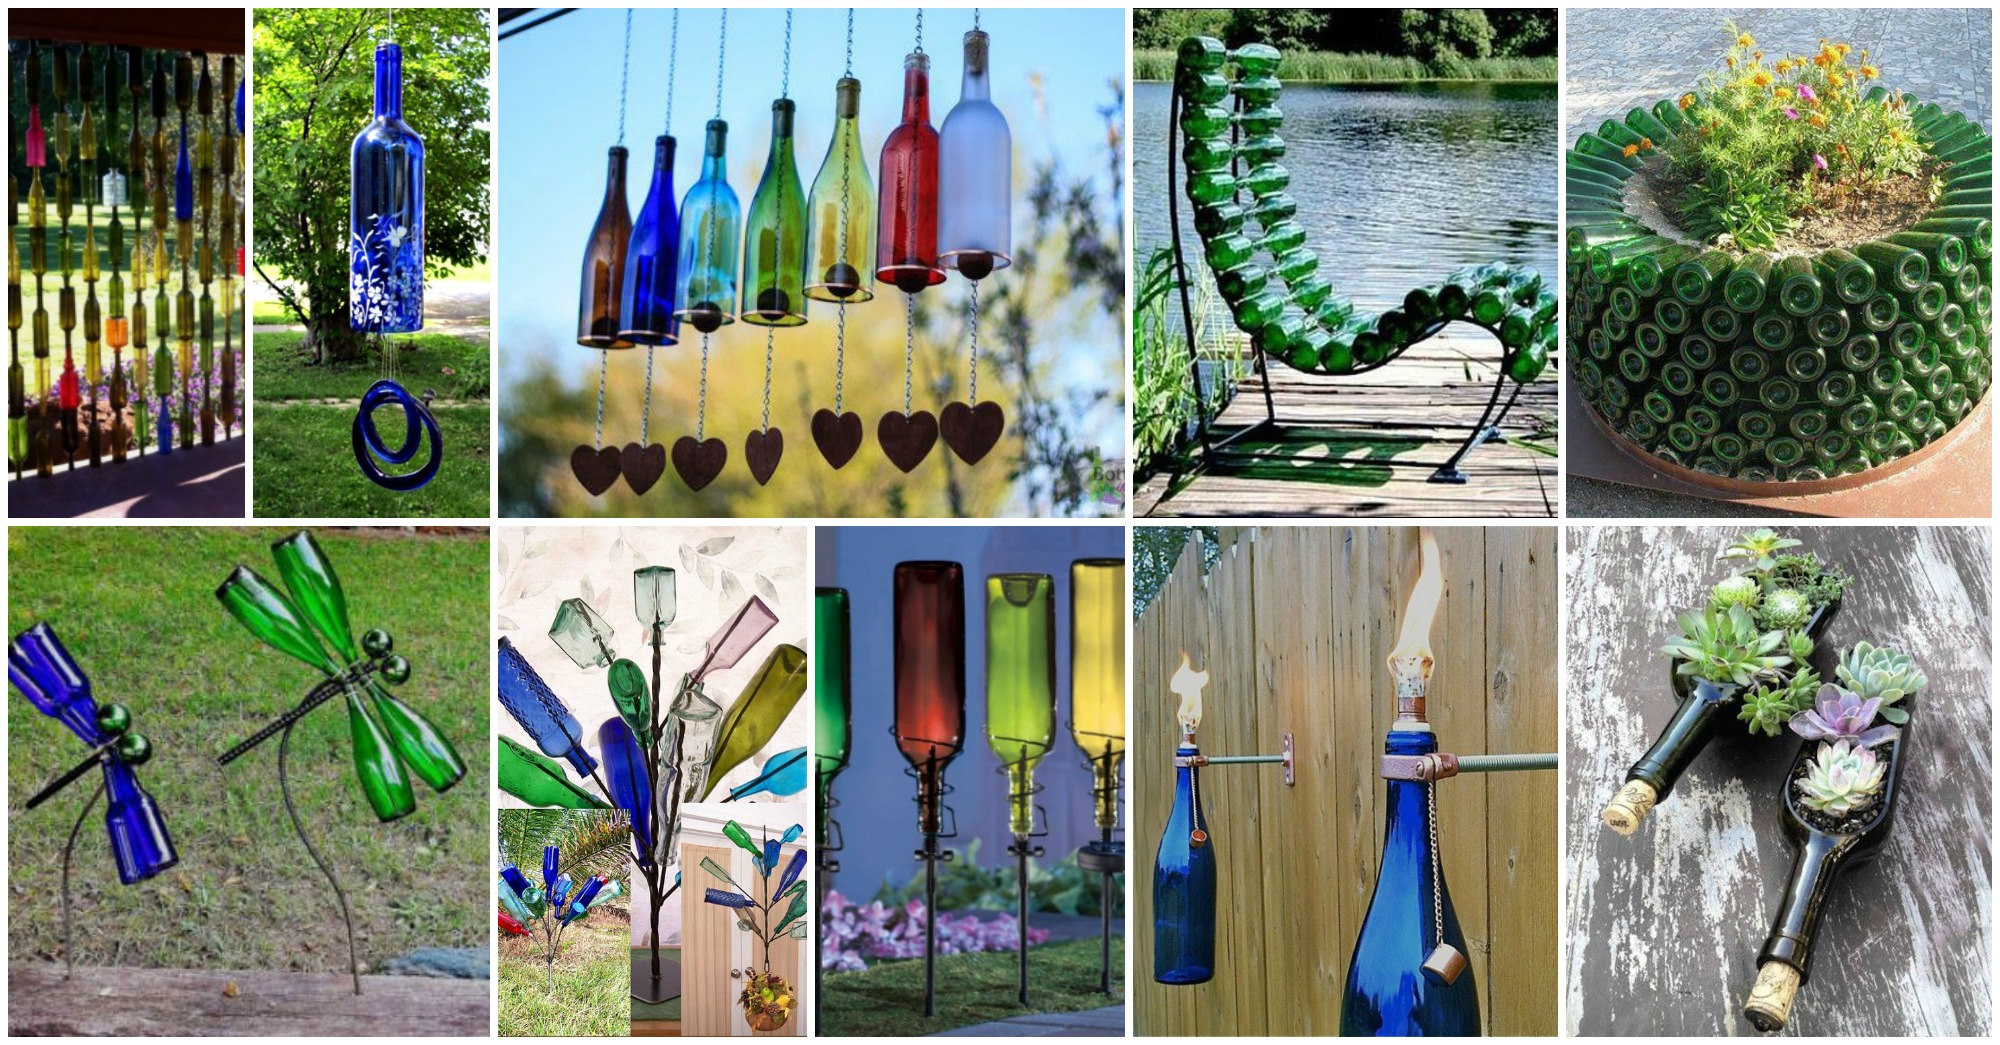 12 diy glass bottles garden decor for Outdoor decorative items